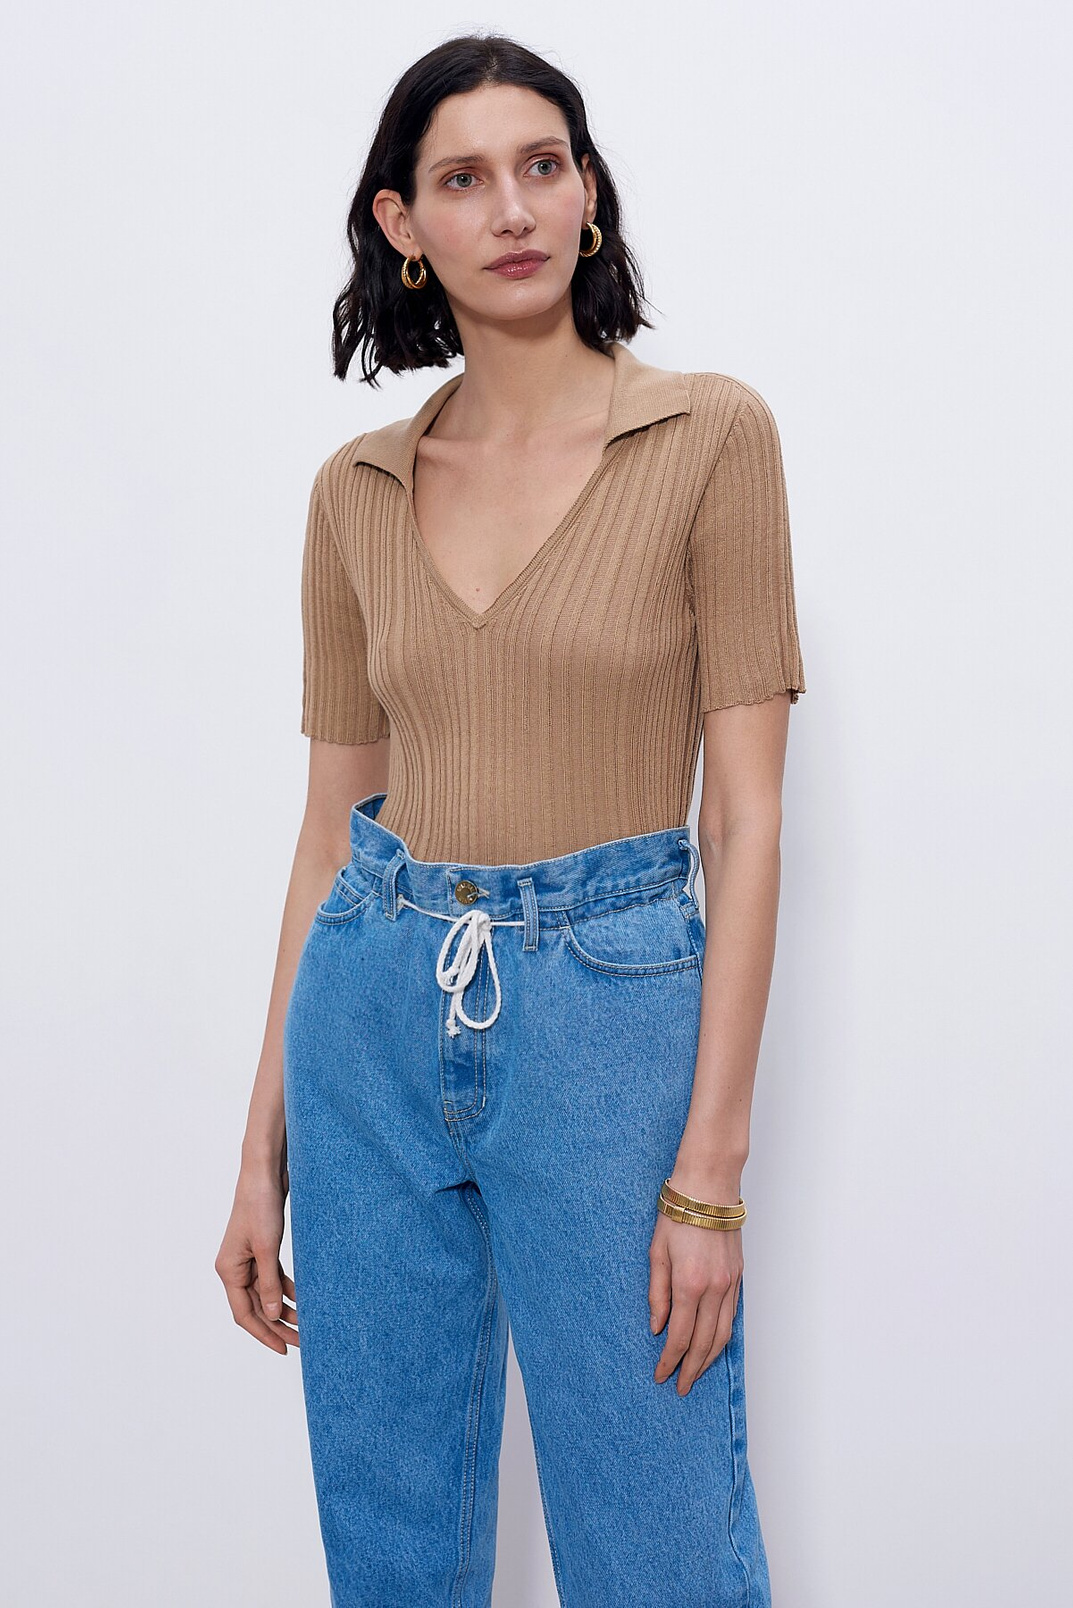 Jumper with collar, Бежевый, XS